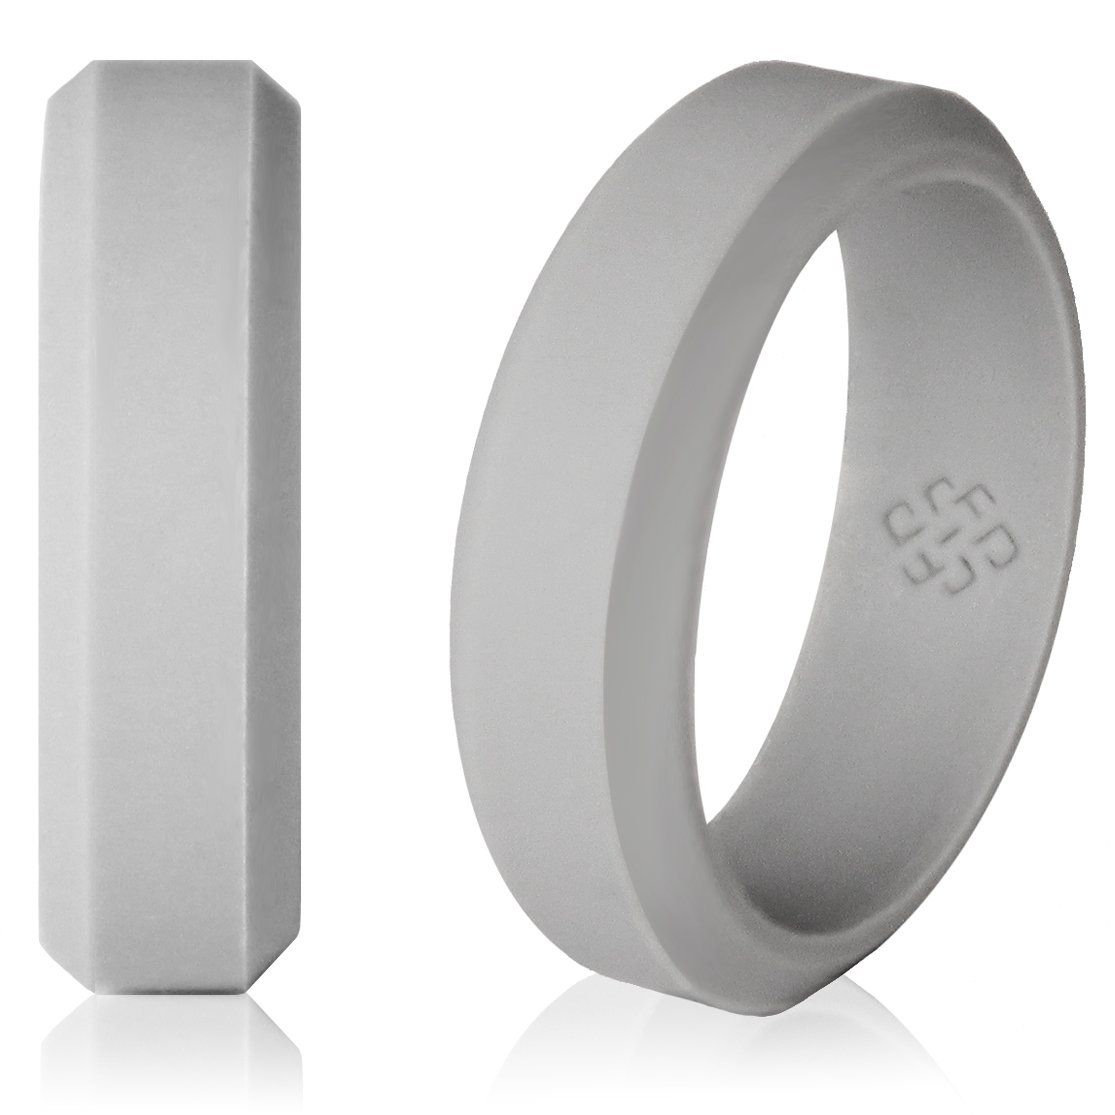 safety wedding rings Light Gray silicone wedding ring Modern beveled design cloud9 gray grey